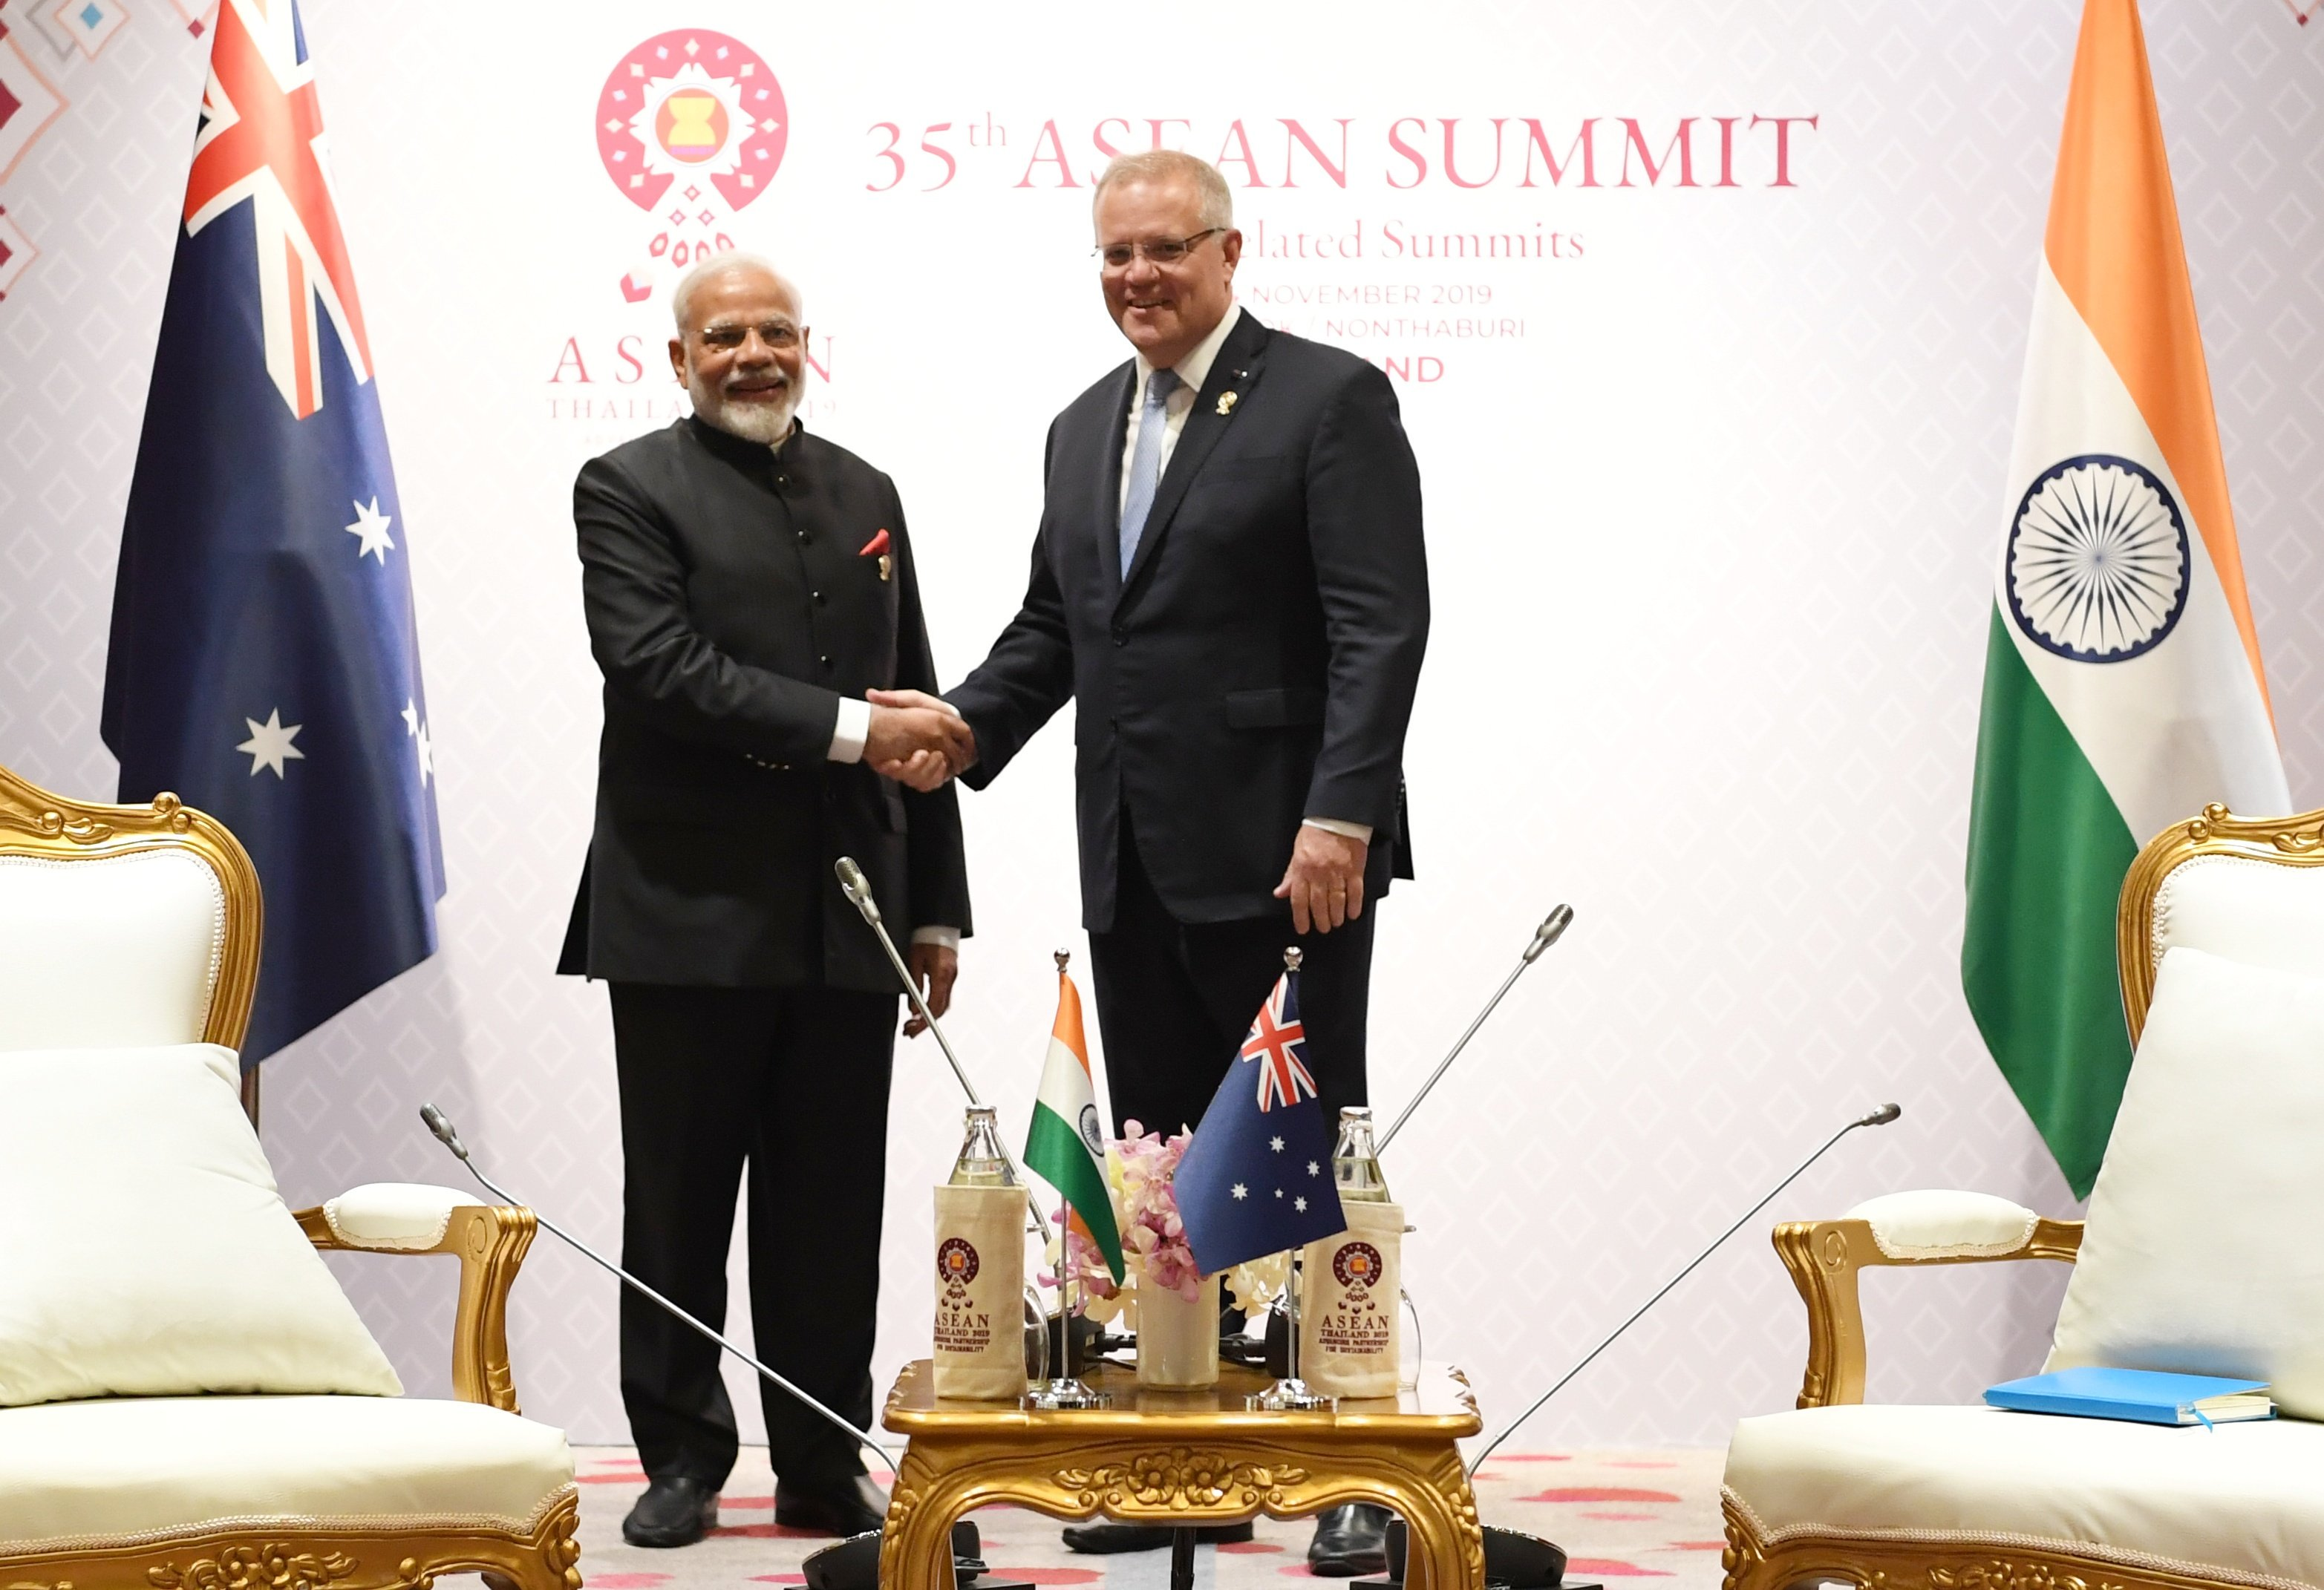 Australian Prime Minister Scott Morrison with Narendra Modi at ASEAN Summit. Photo courtesy: Twitter/@PIB_India